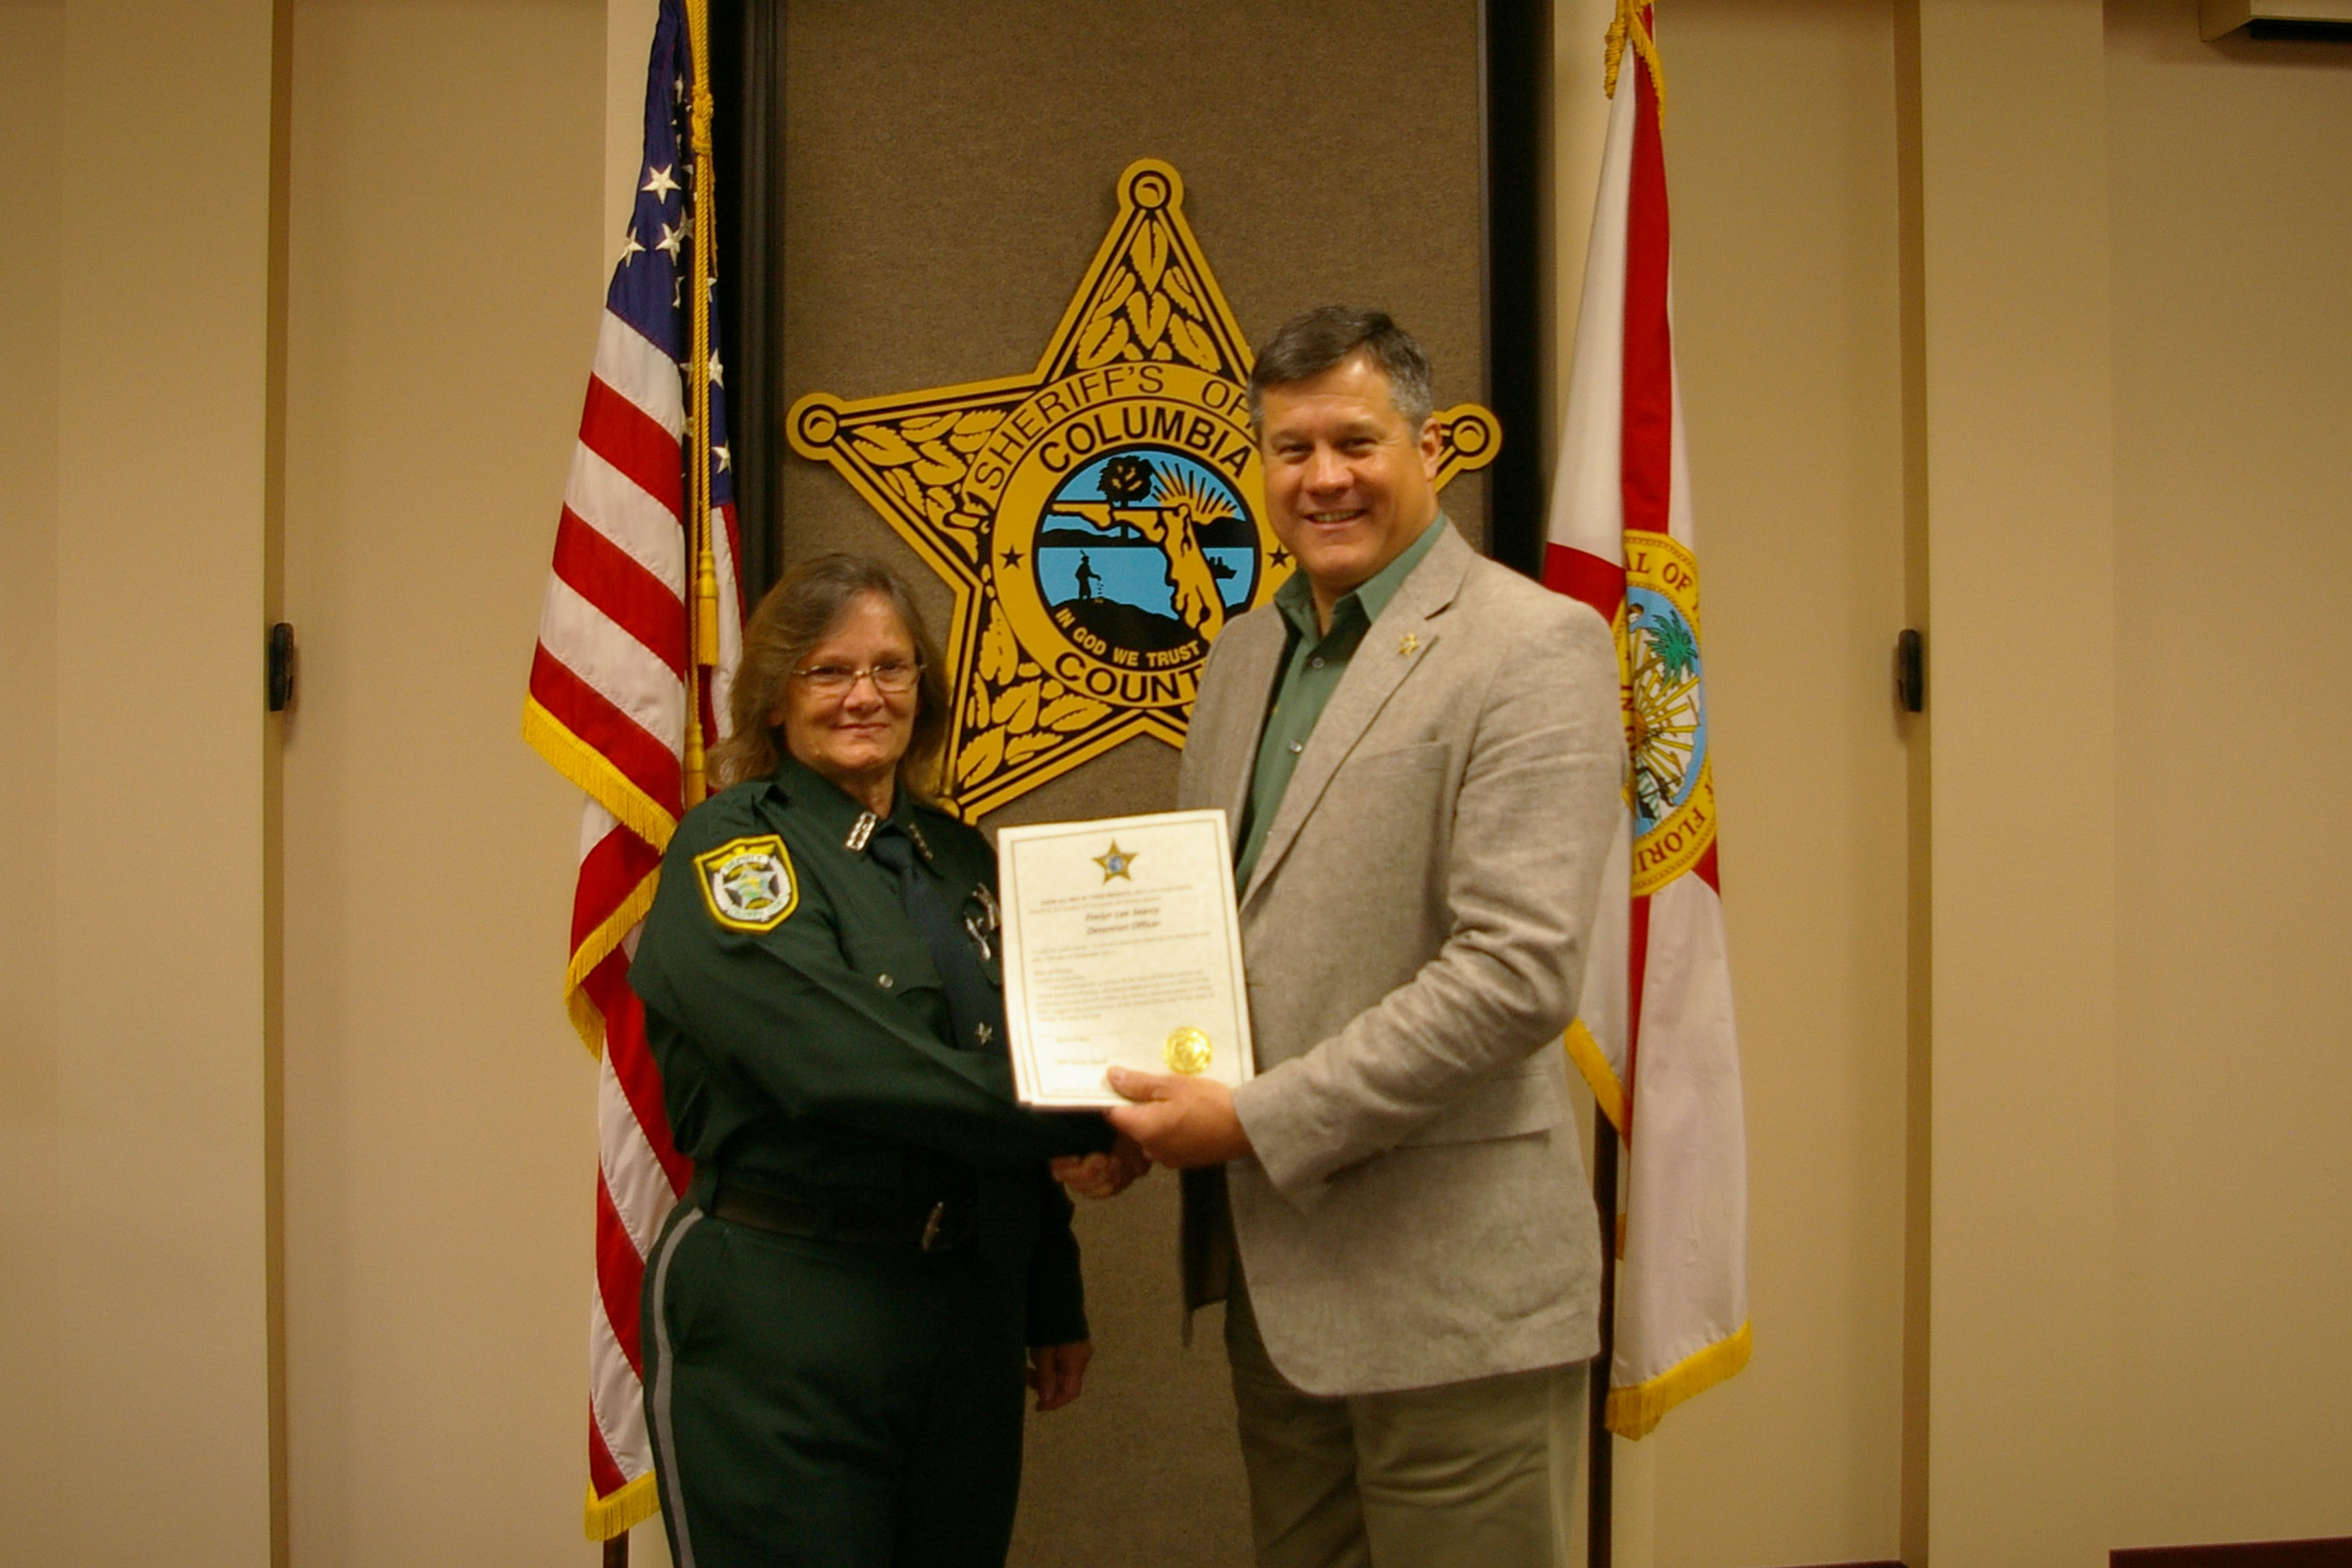 Detention Deputy Evelyn Searcy and Sheriff Mark Hunter